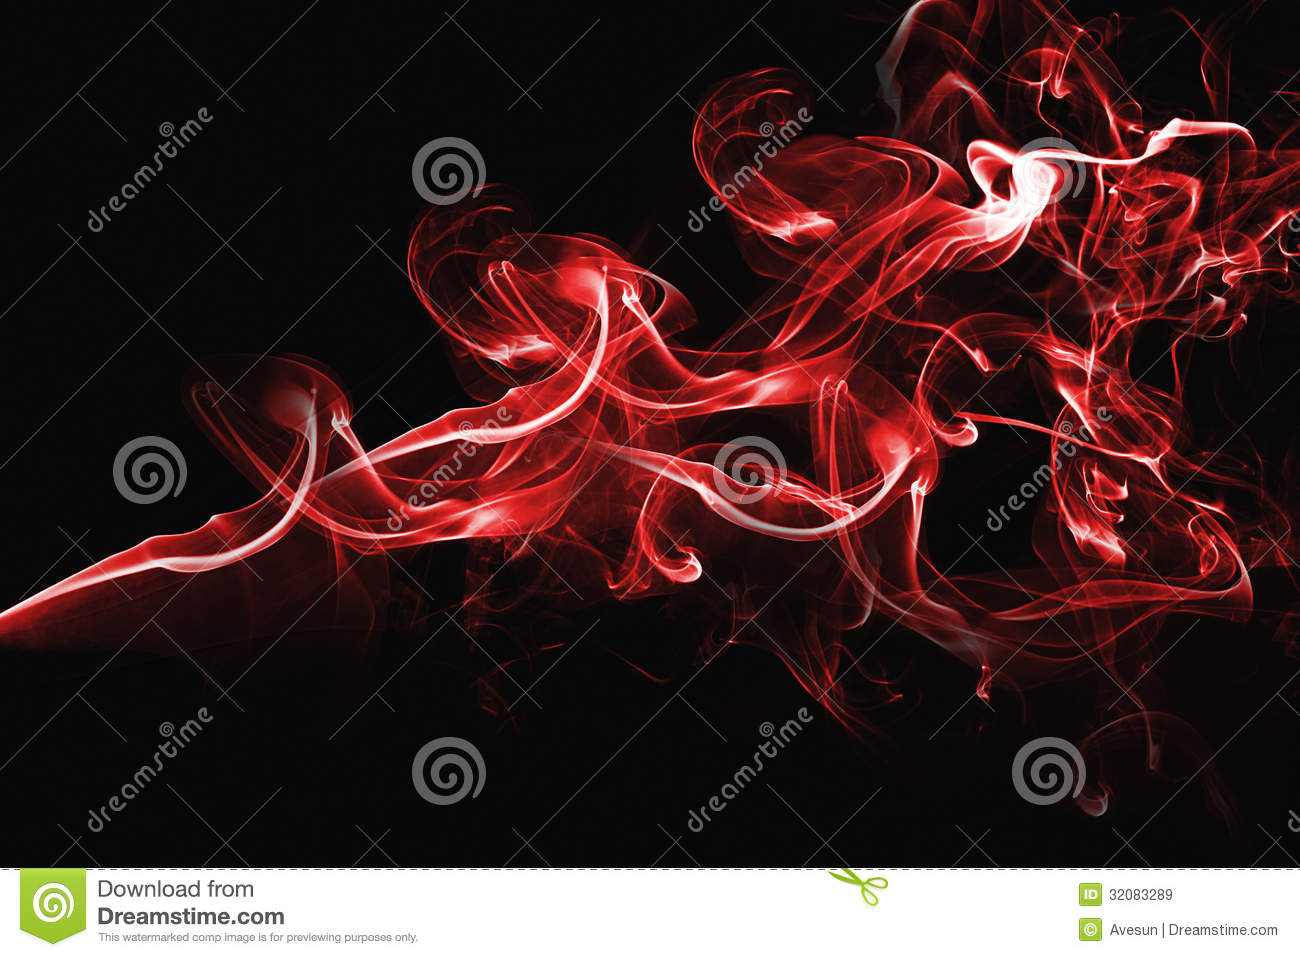 Red Abstract Smoke Design Royalty Free Stock Images - Image: 32083289